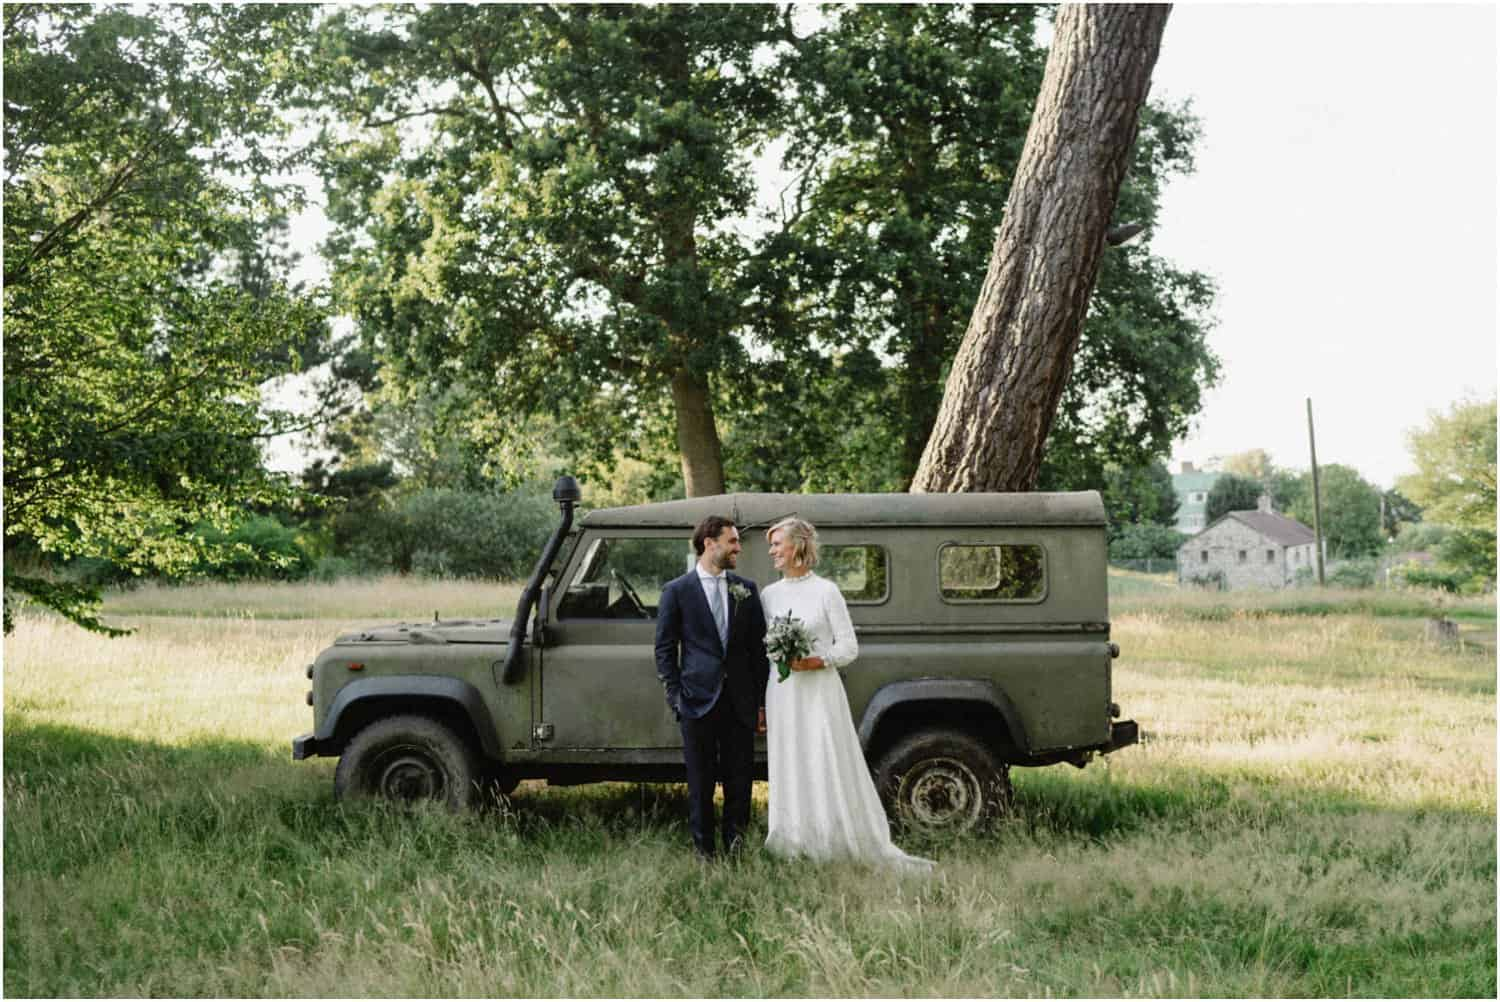 A bride and groom stand in front of an old Land Rover at their Isle of Wight wedding